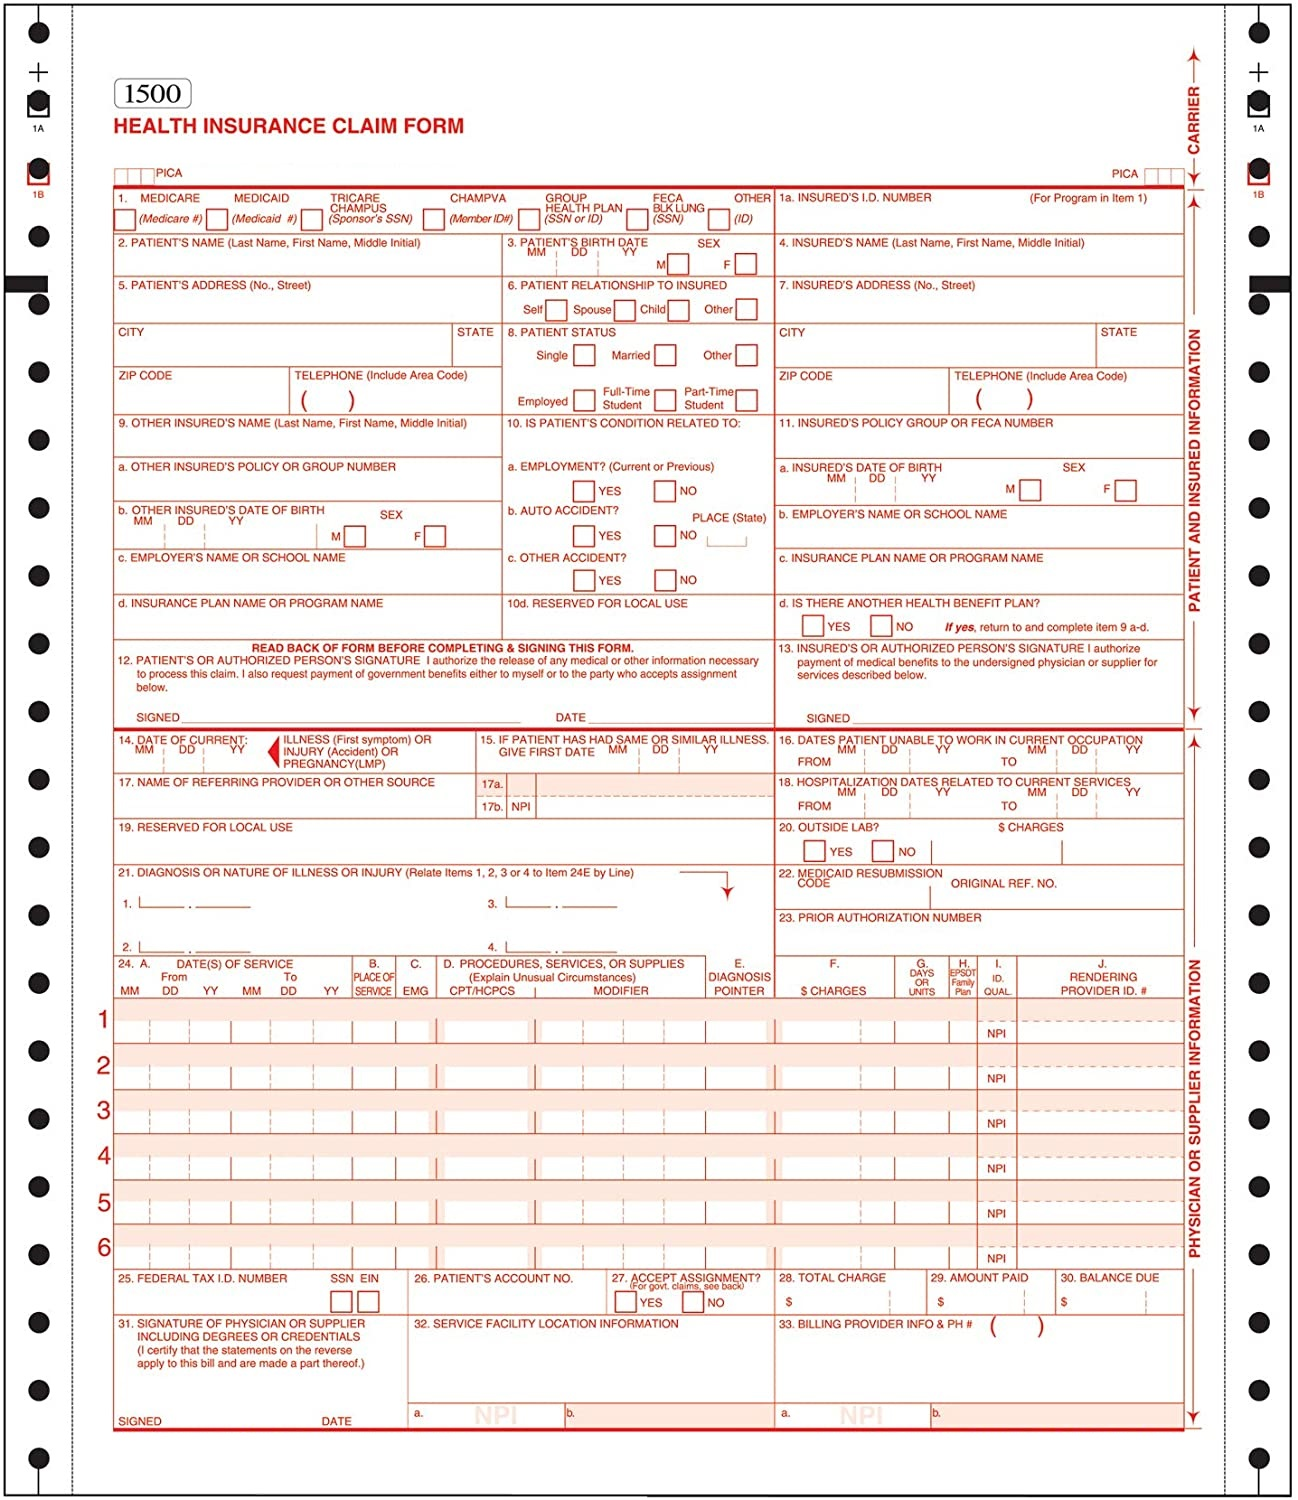 Customized Receipt/Invoice/Warranty Office Paper CB/CFB/CF 8.5 * 11 NCR Carbonless Paper 9.5 *11 Computer Forms